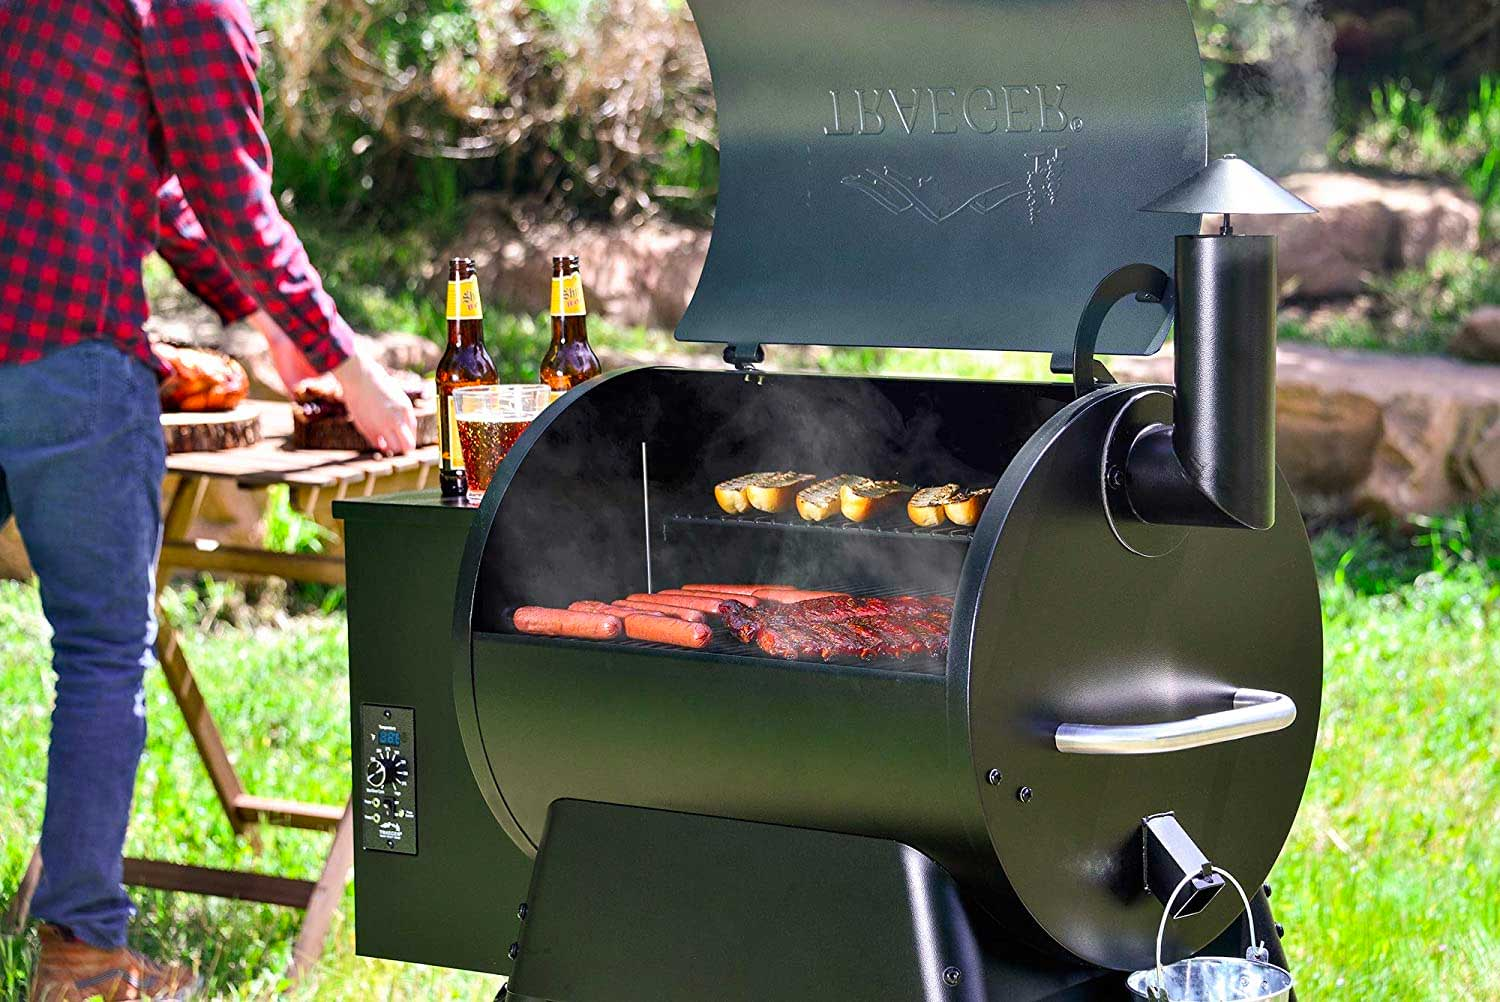 Guy grilling with a Traeger Grill Pro Series